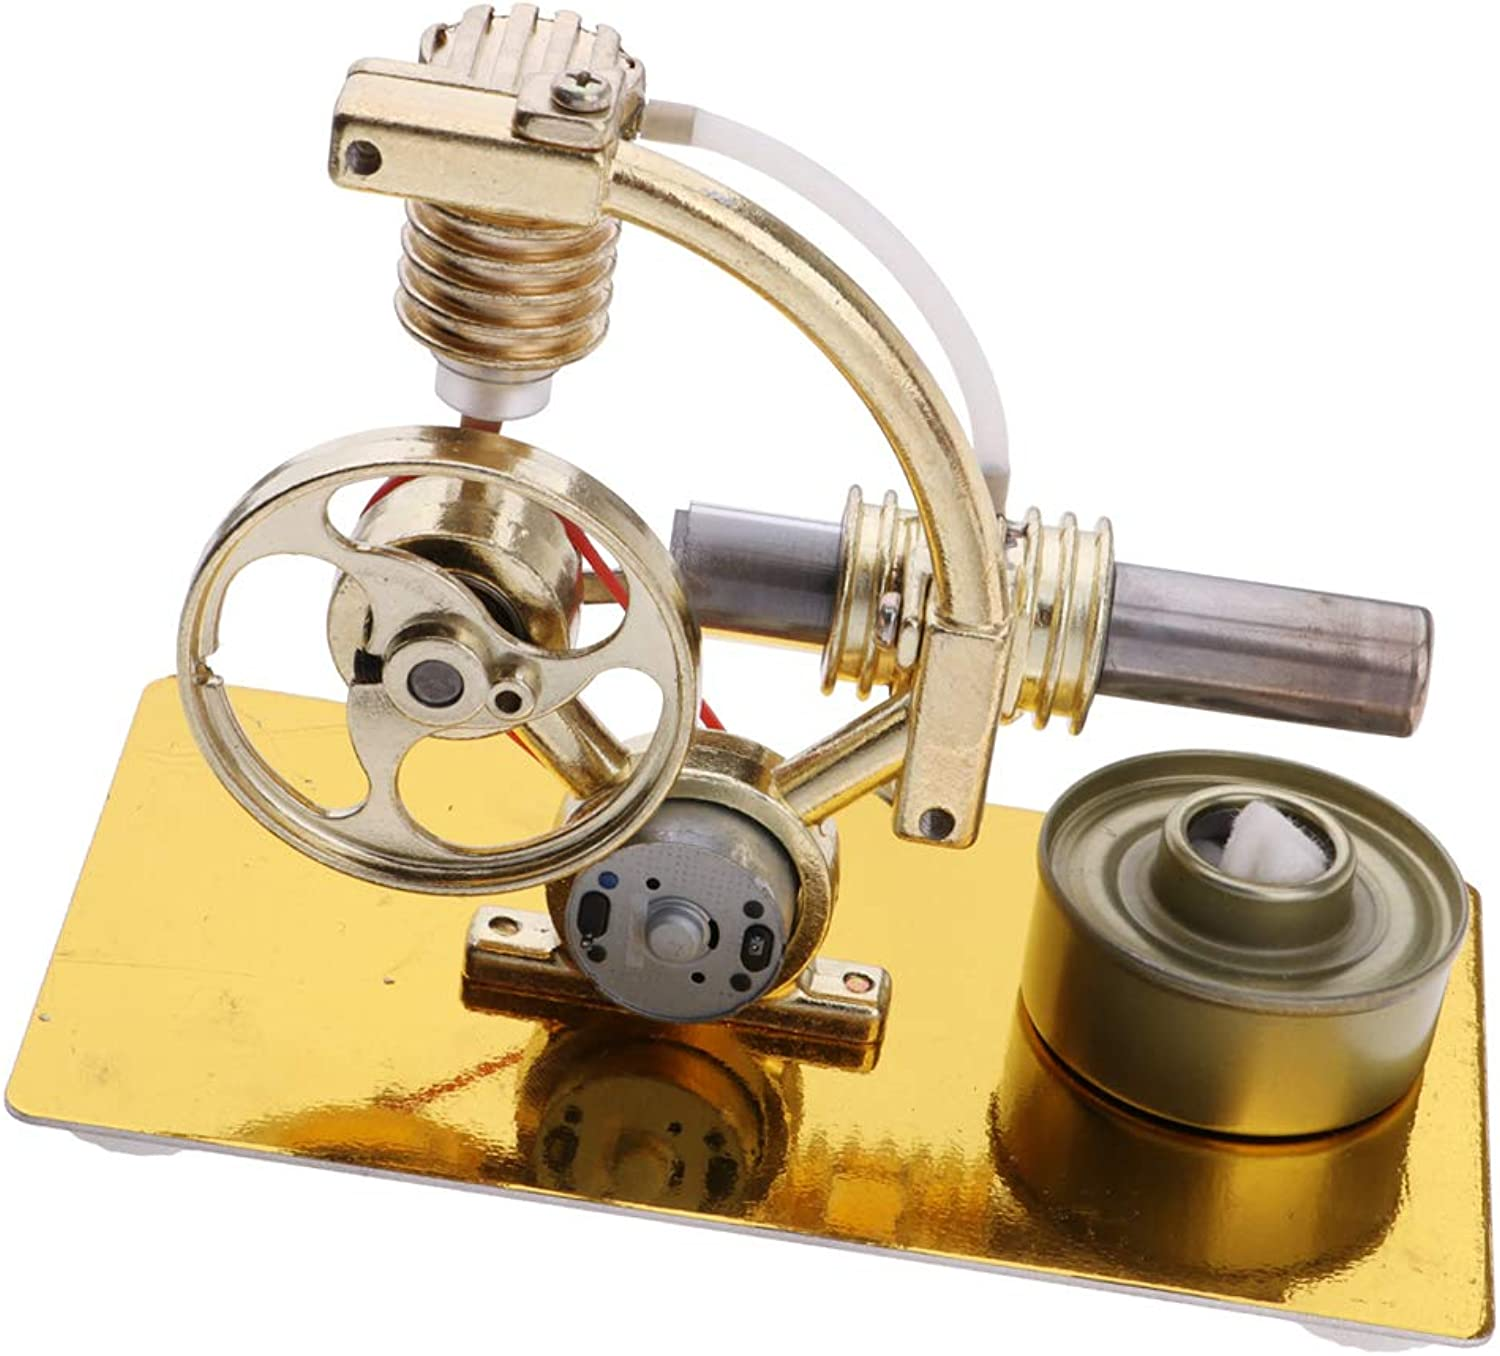 Fityle Mini Stirling Engine Motor Model Educational Toy Kits, Hot Air Steam Powered Toy, Physics Experiment